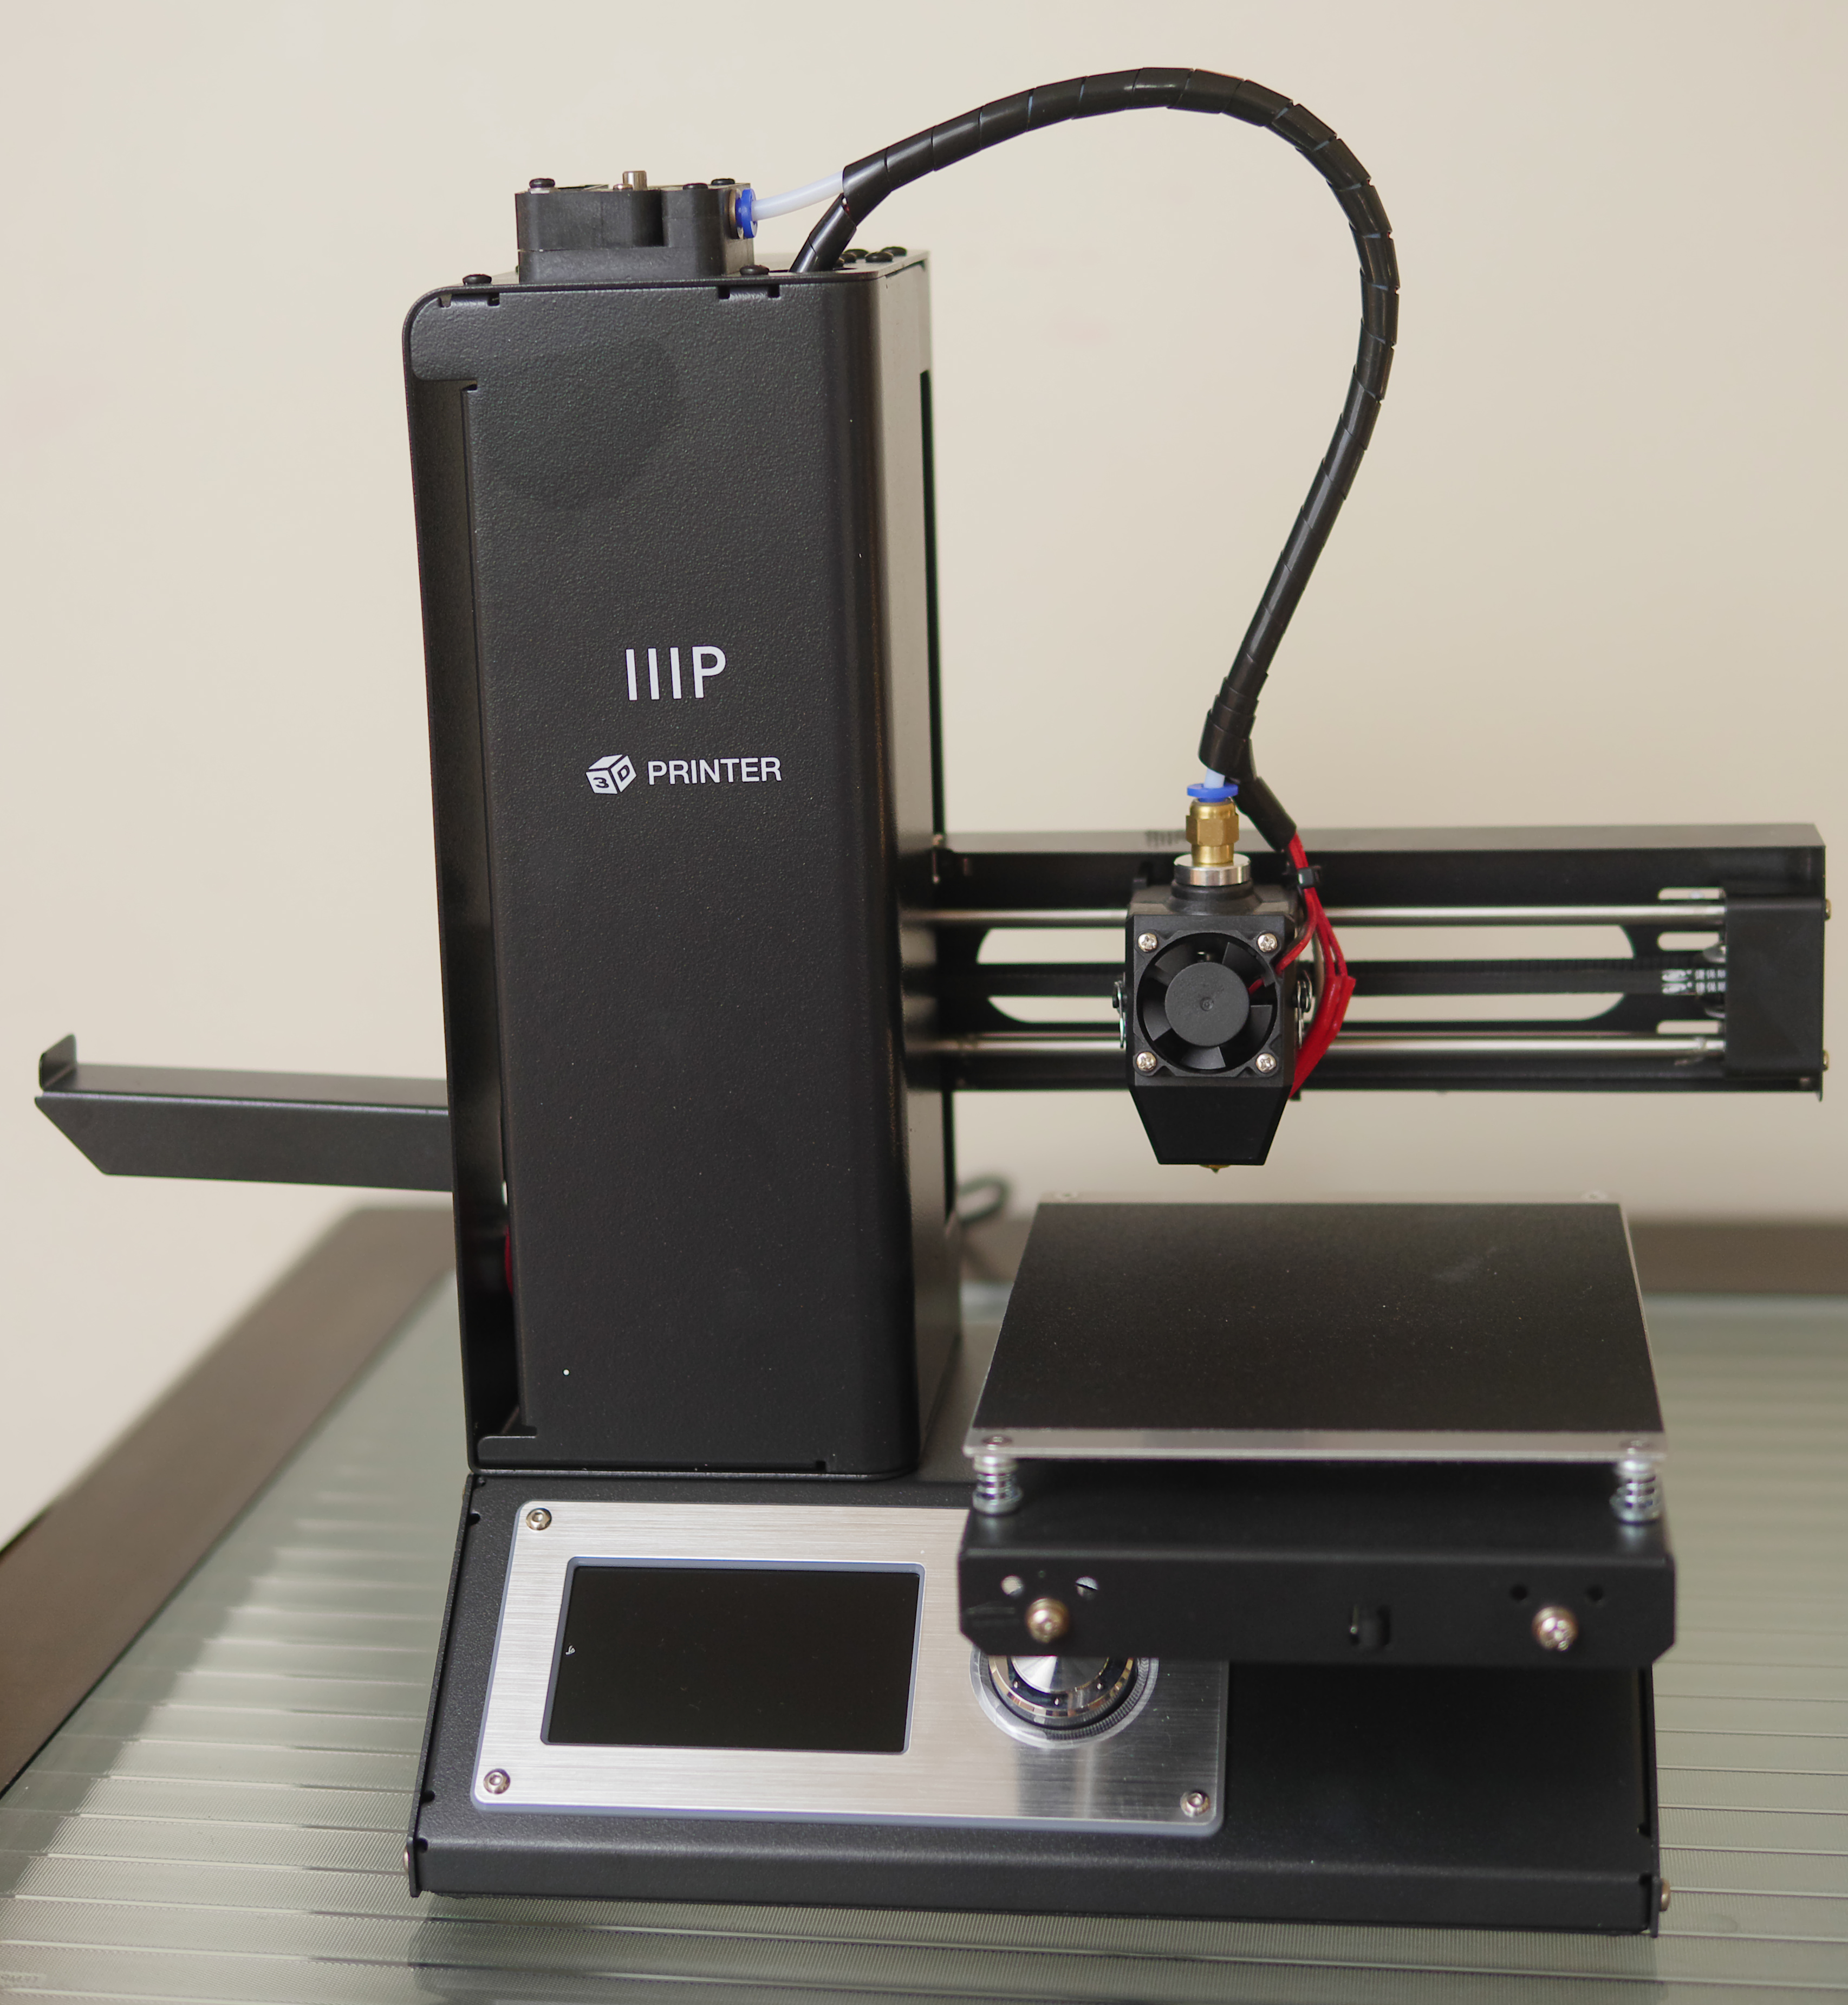 STEM Learning For Kids With The Monoprice Select Mini 3D ...